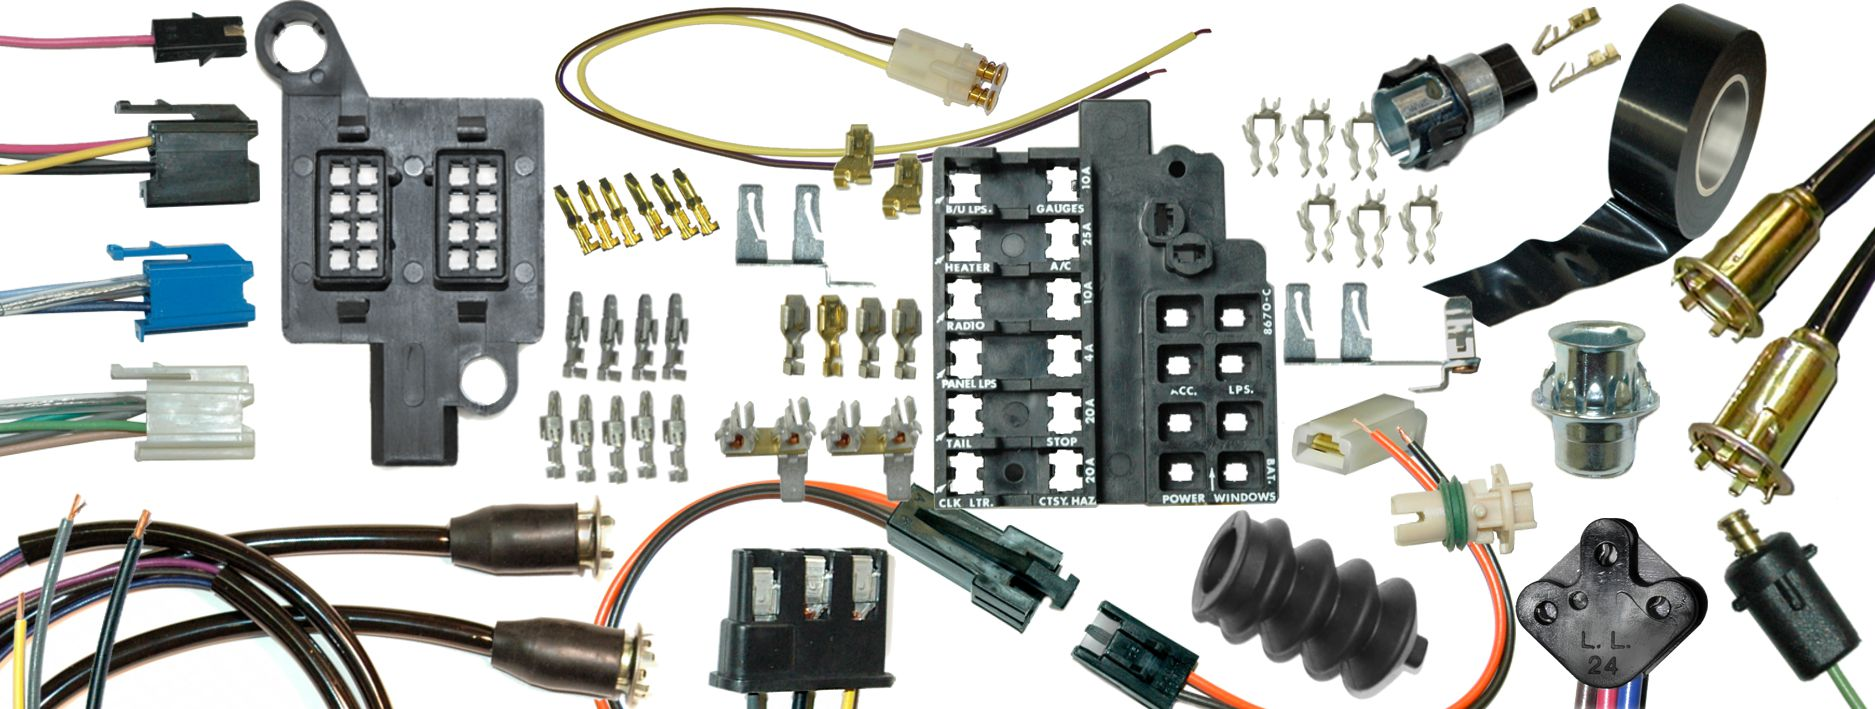 hight resolution of repair components for wiring harnesses